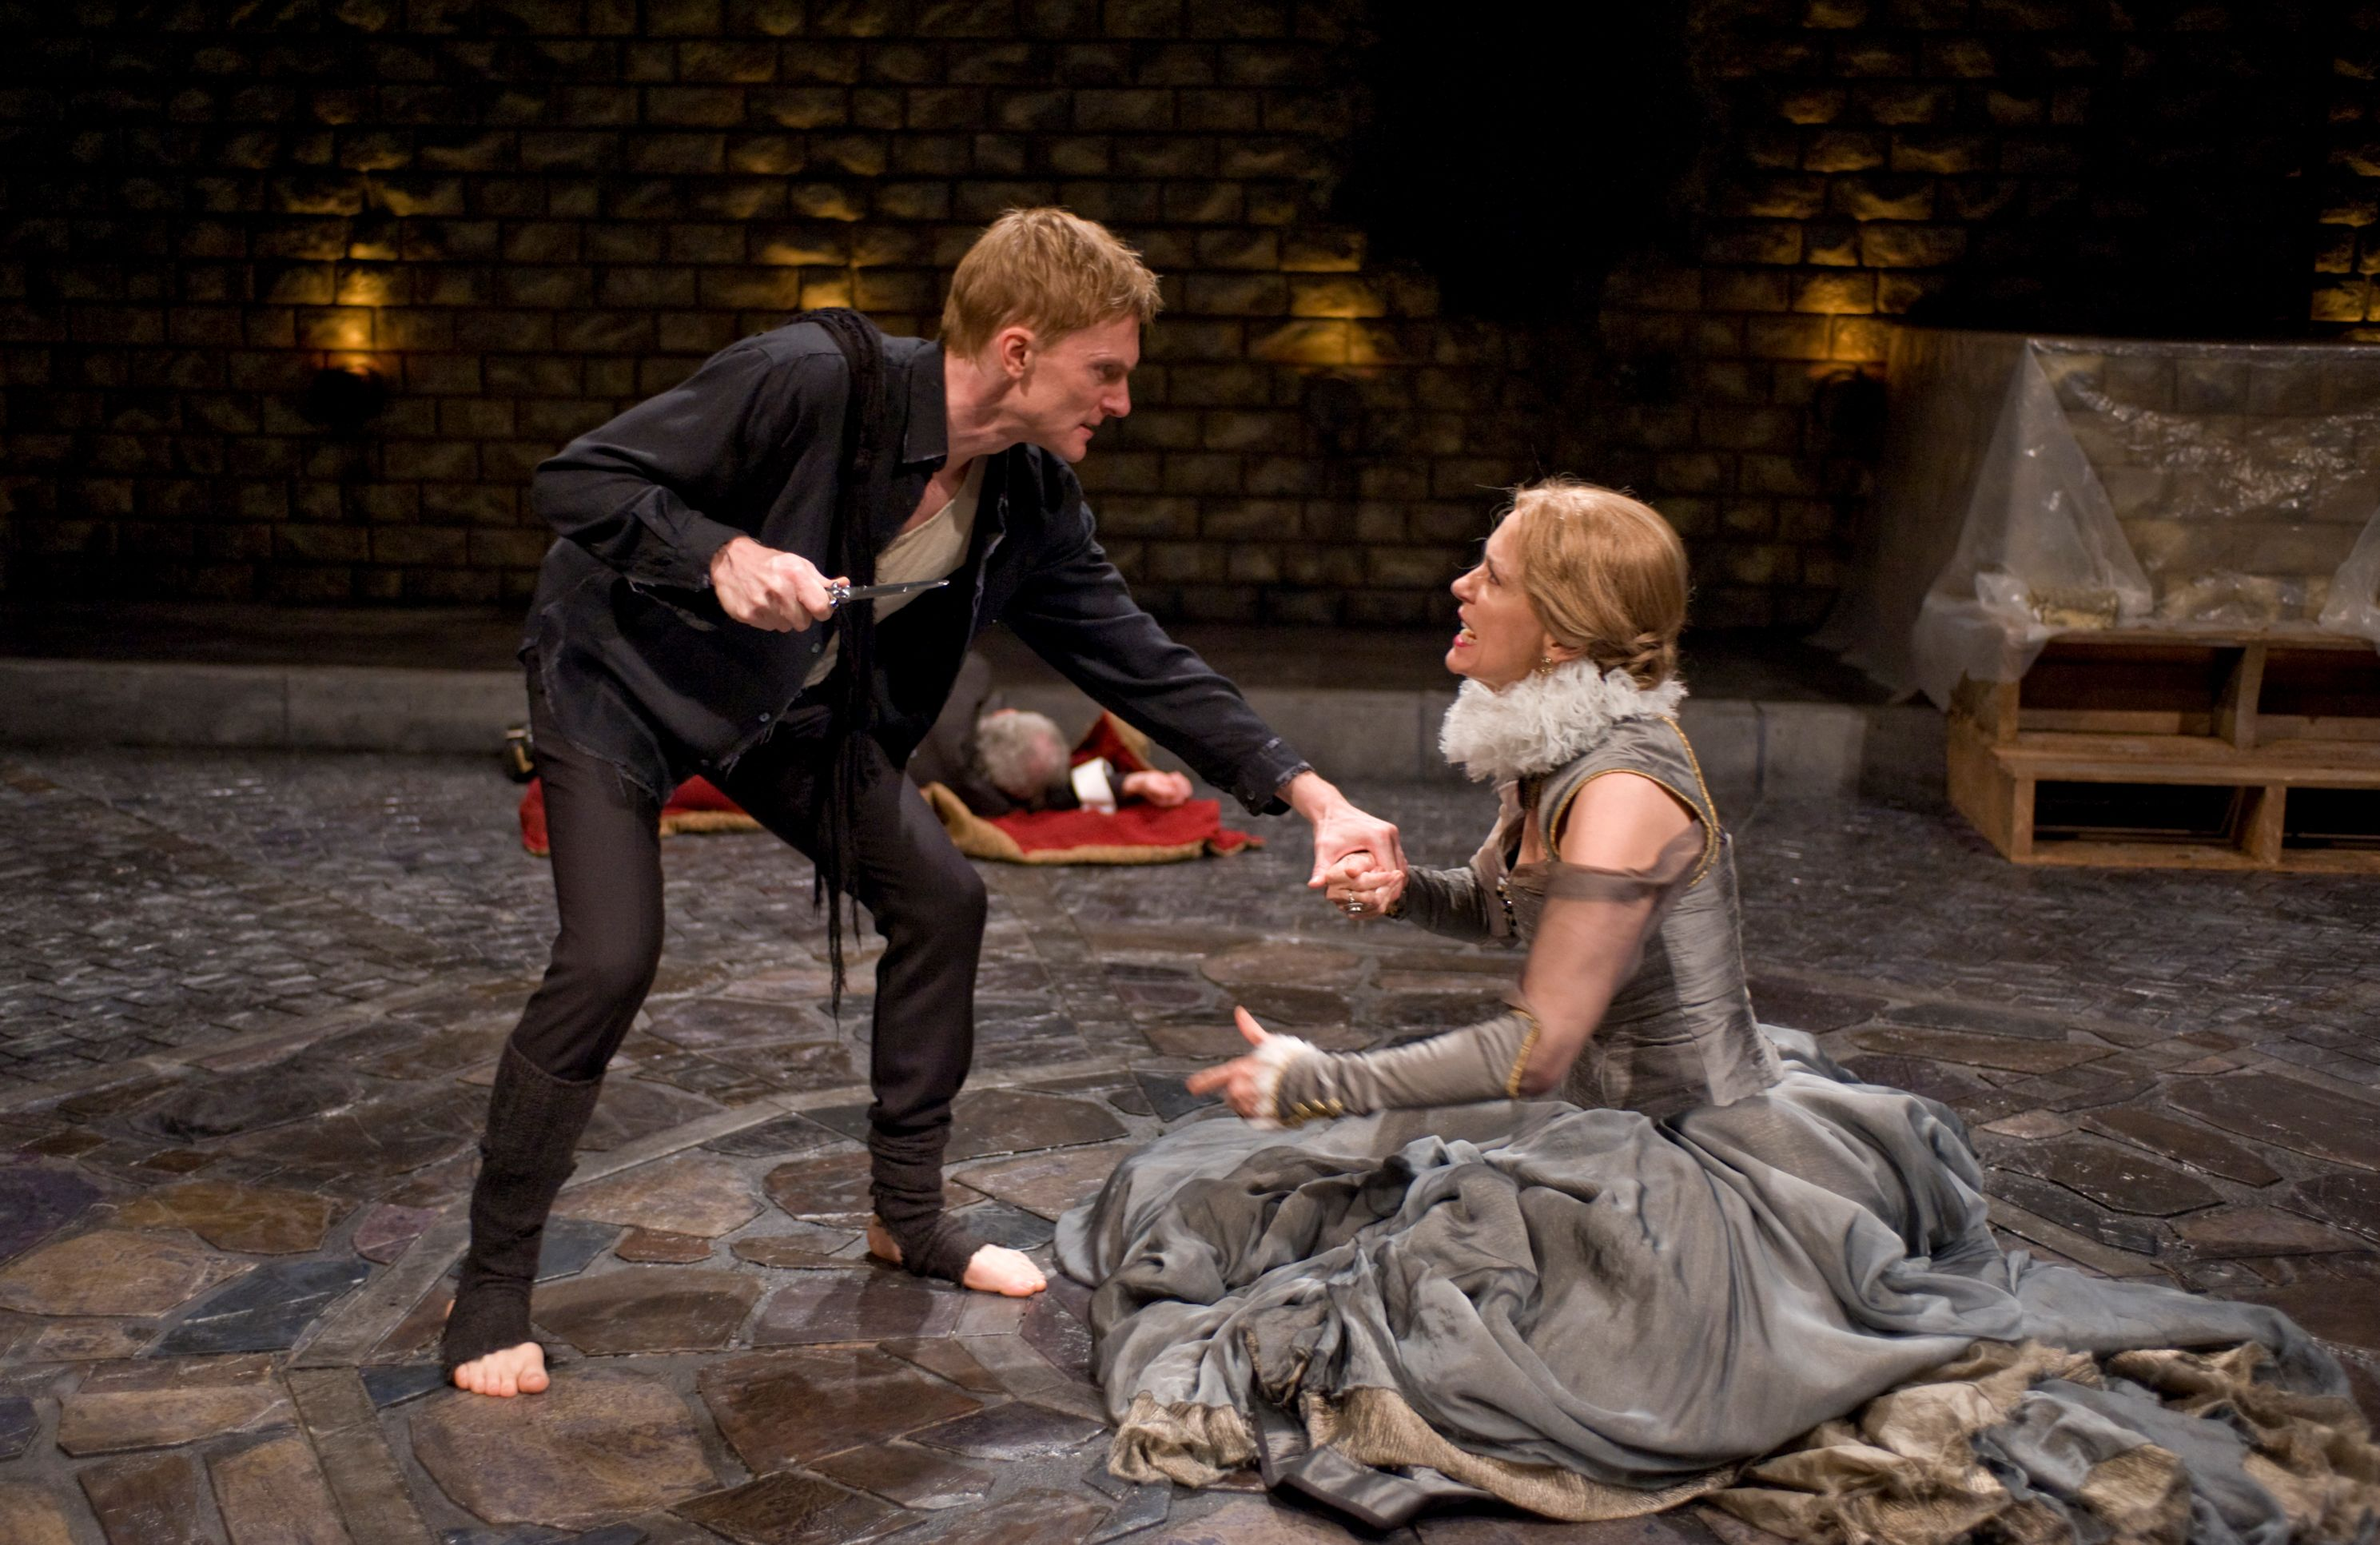 a review of death in a new way in hamlet Death in the play hamlet is very prevalent--almost all of the characters succumb to it death in hamlet related study materials who are you continue.